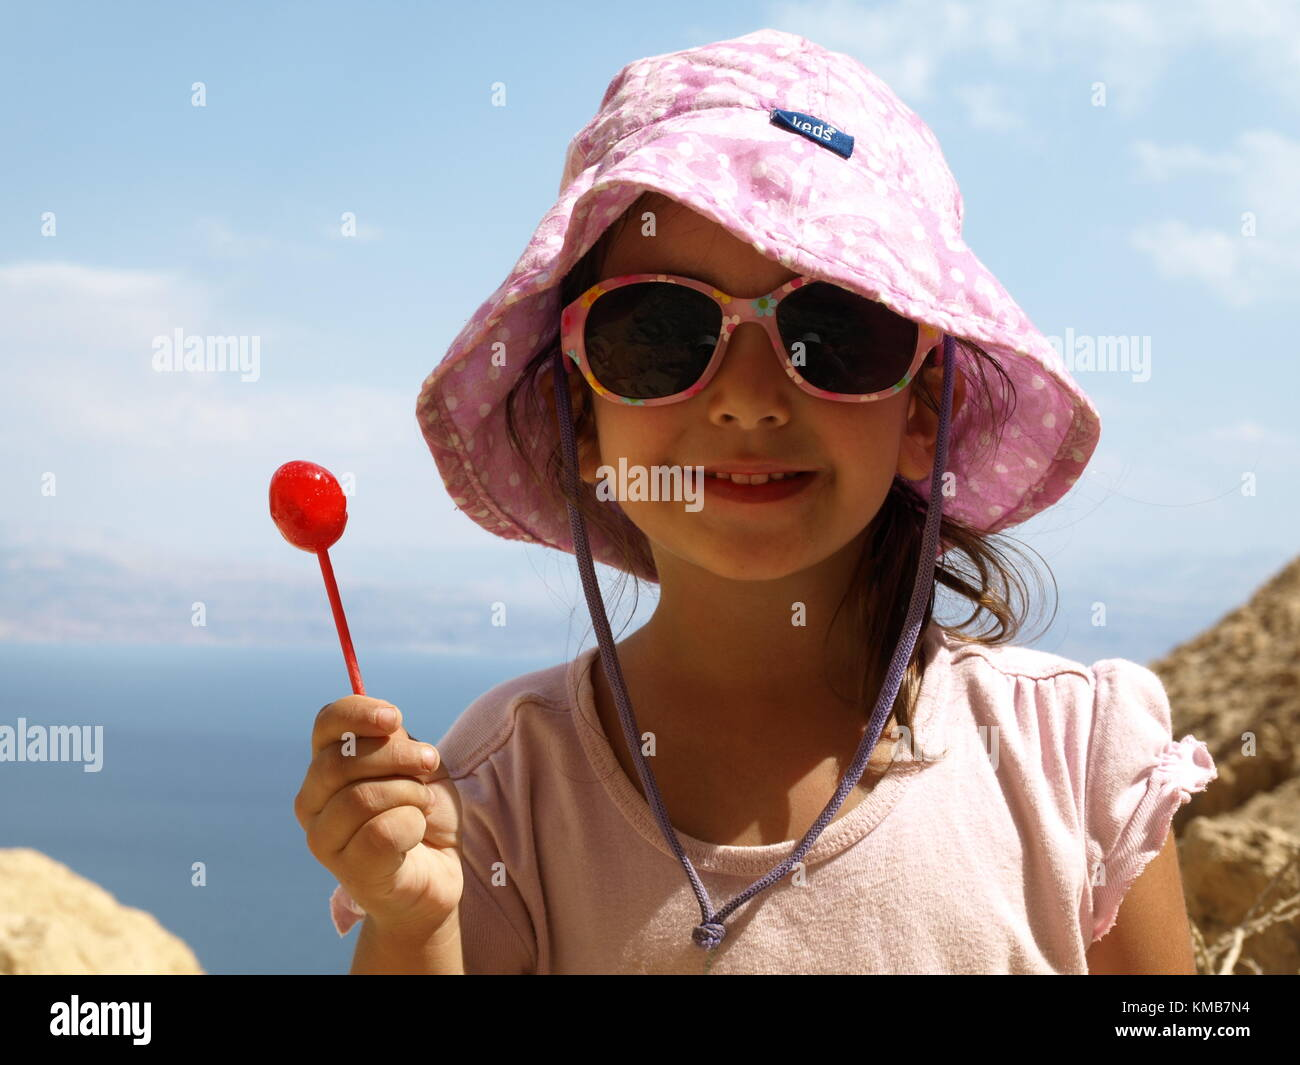 A smiling girl with lollipop on a hike Banque D'Images